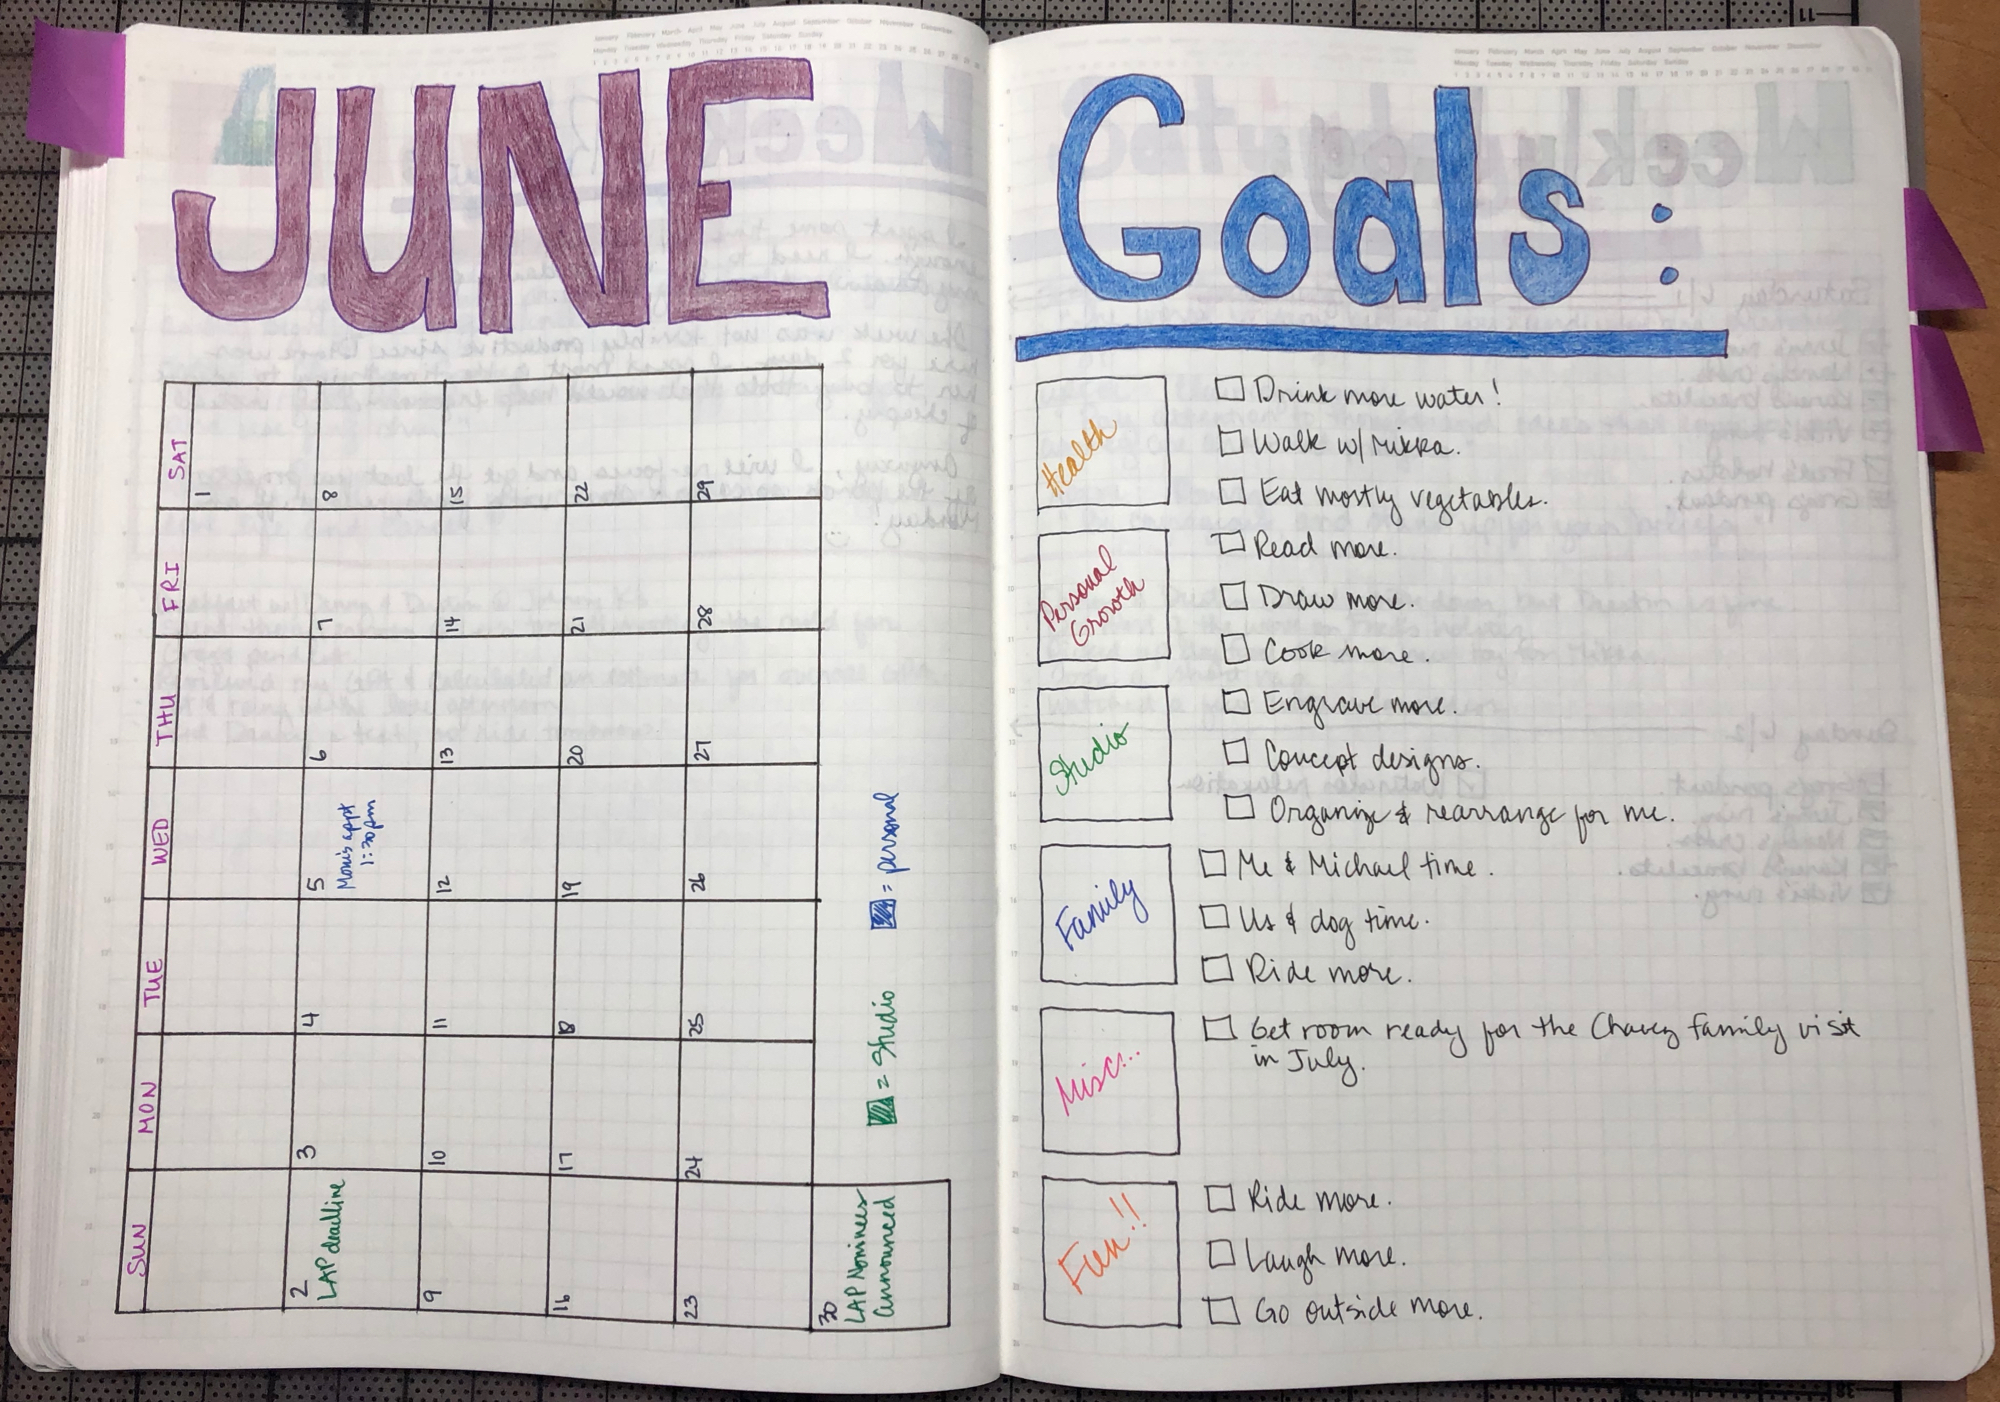 Monthly overview page with a sampling of goals I'd like to meet for the month of June.